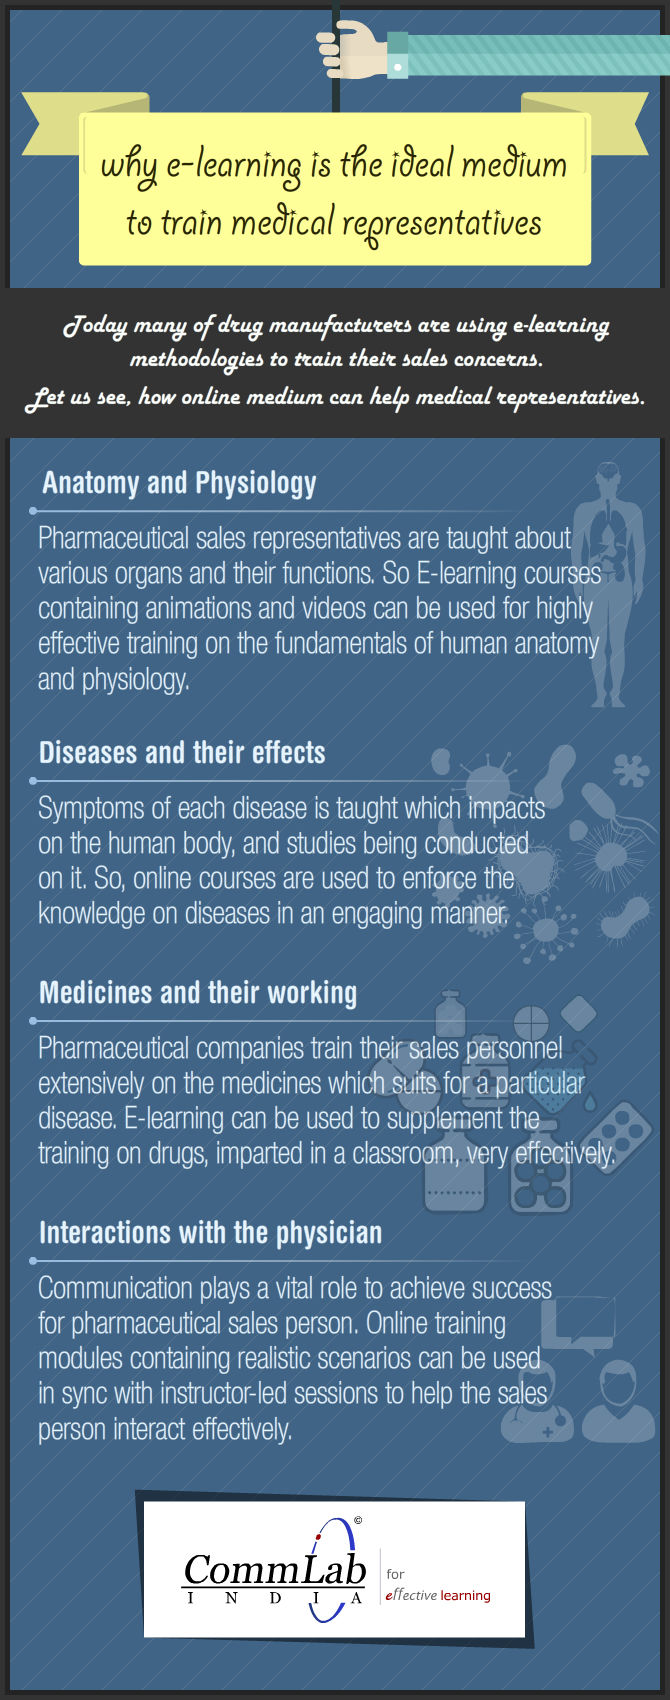 Imparting Effective Training to Medical Reps Online [Infographic]